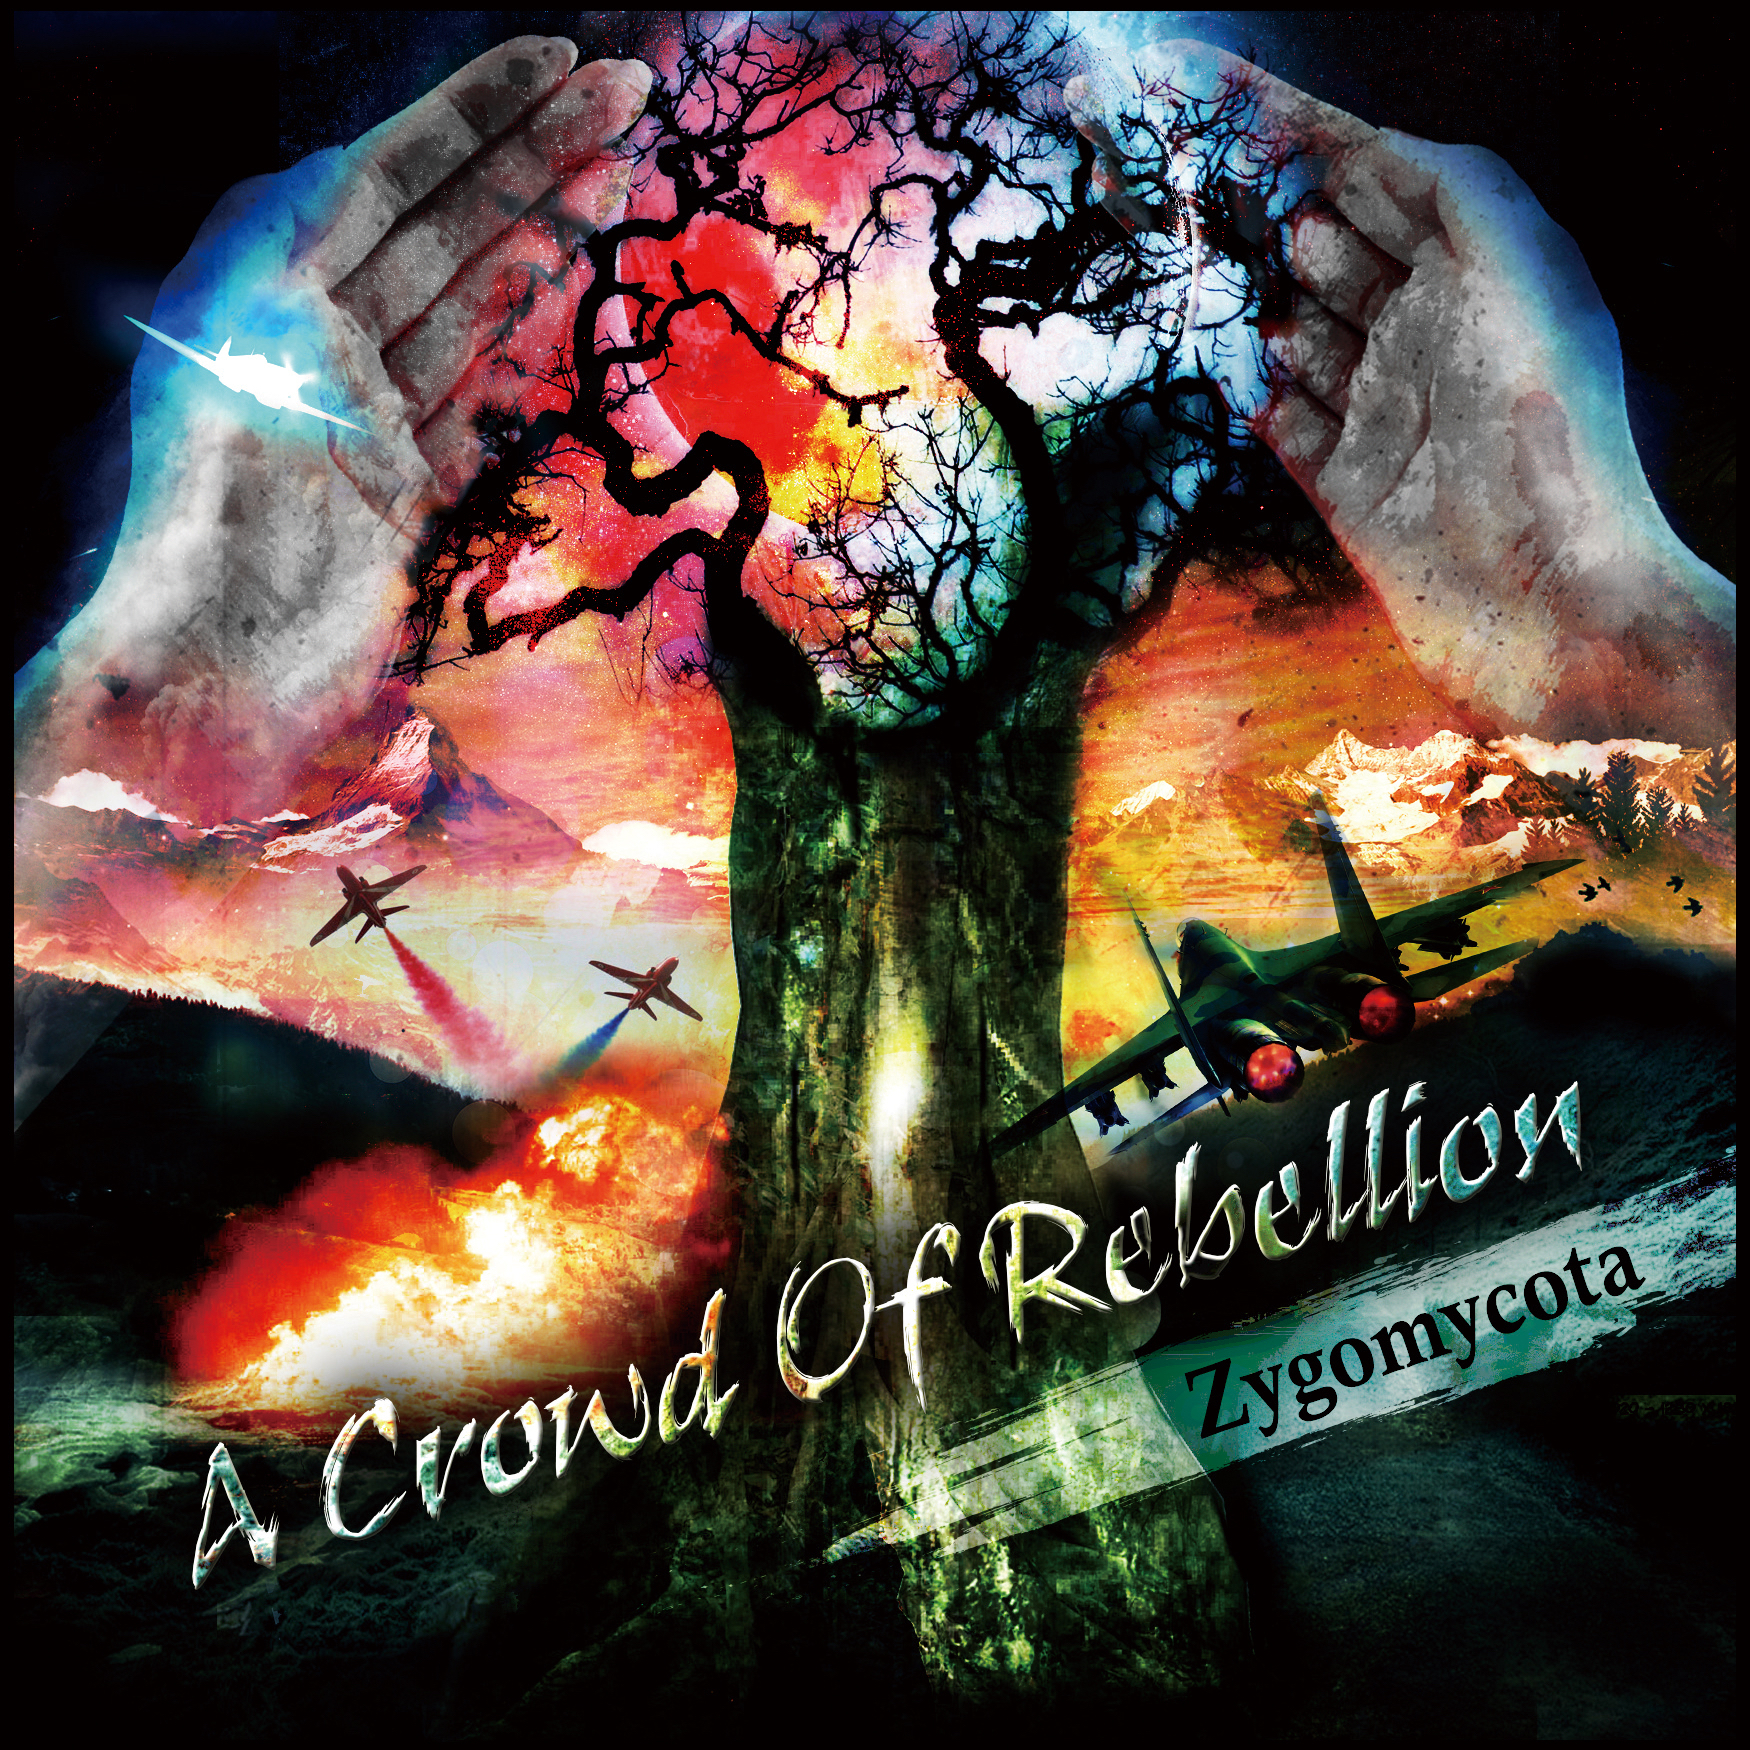 A Crowd Of Rebellion - Zygomycota [EP] (2013)